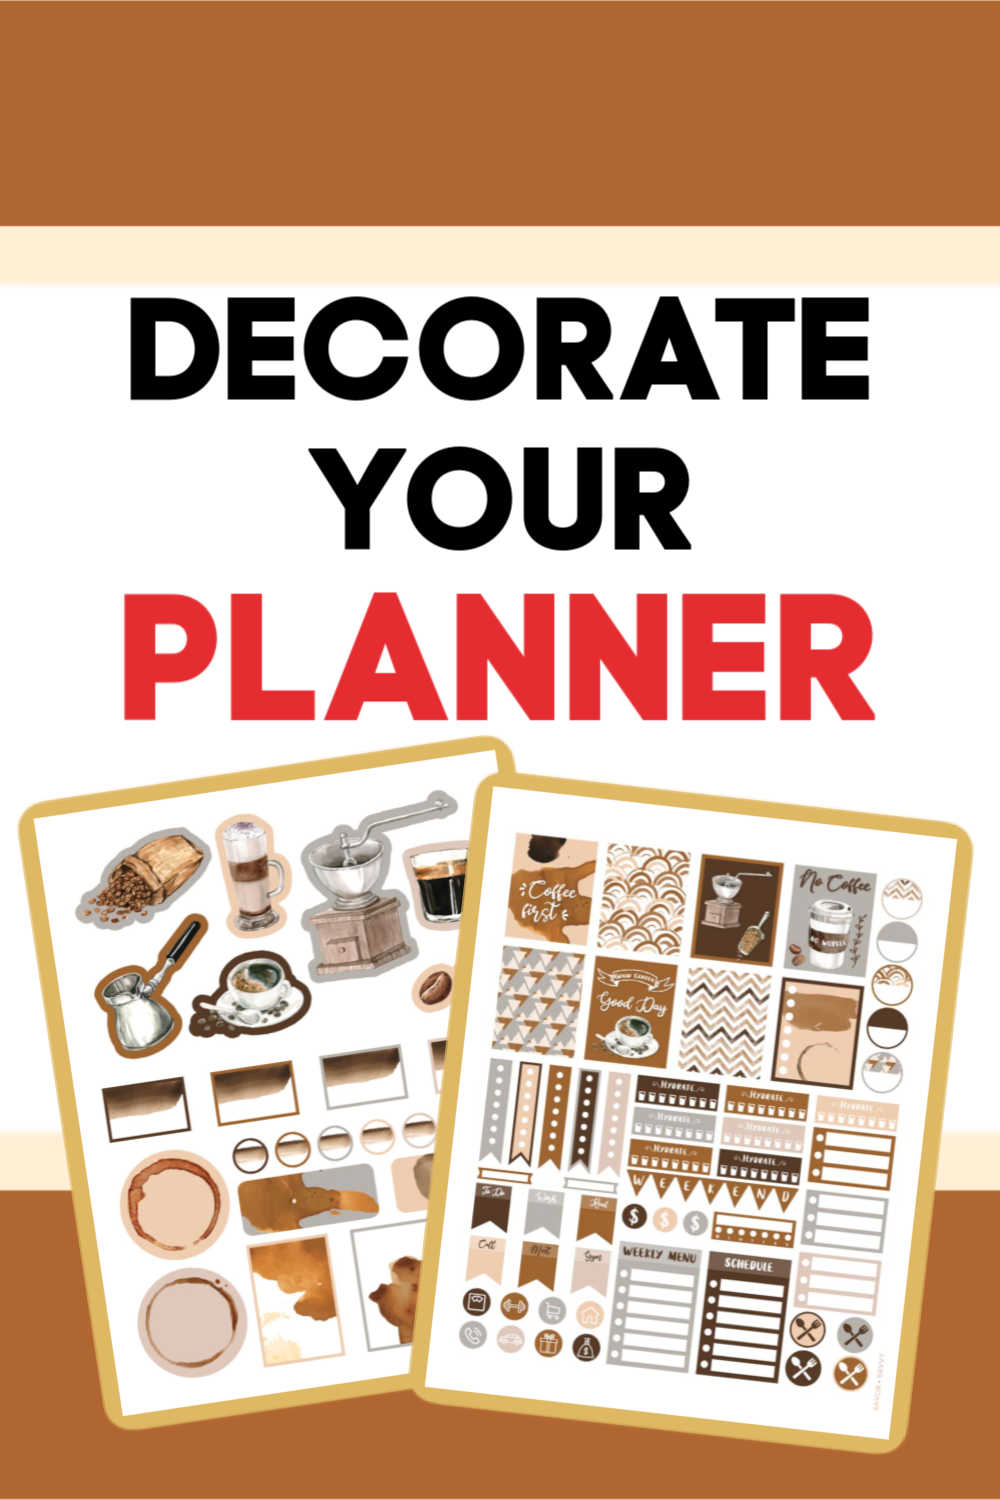 FREE Decorative Coffee Stickers For Your Planner